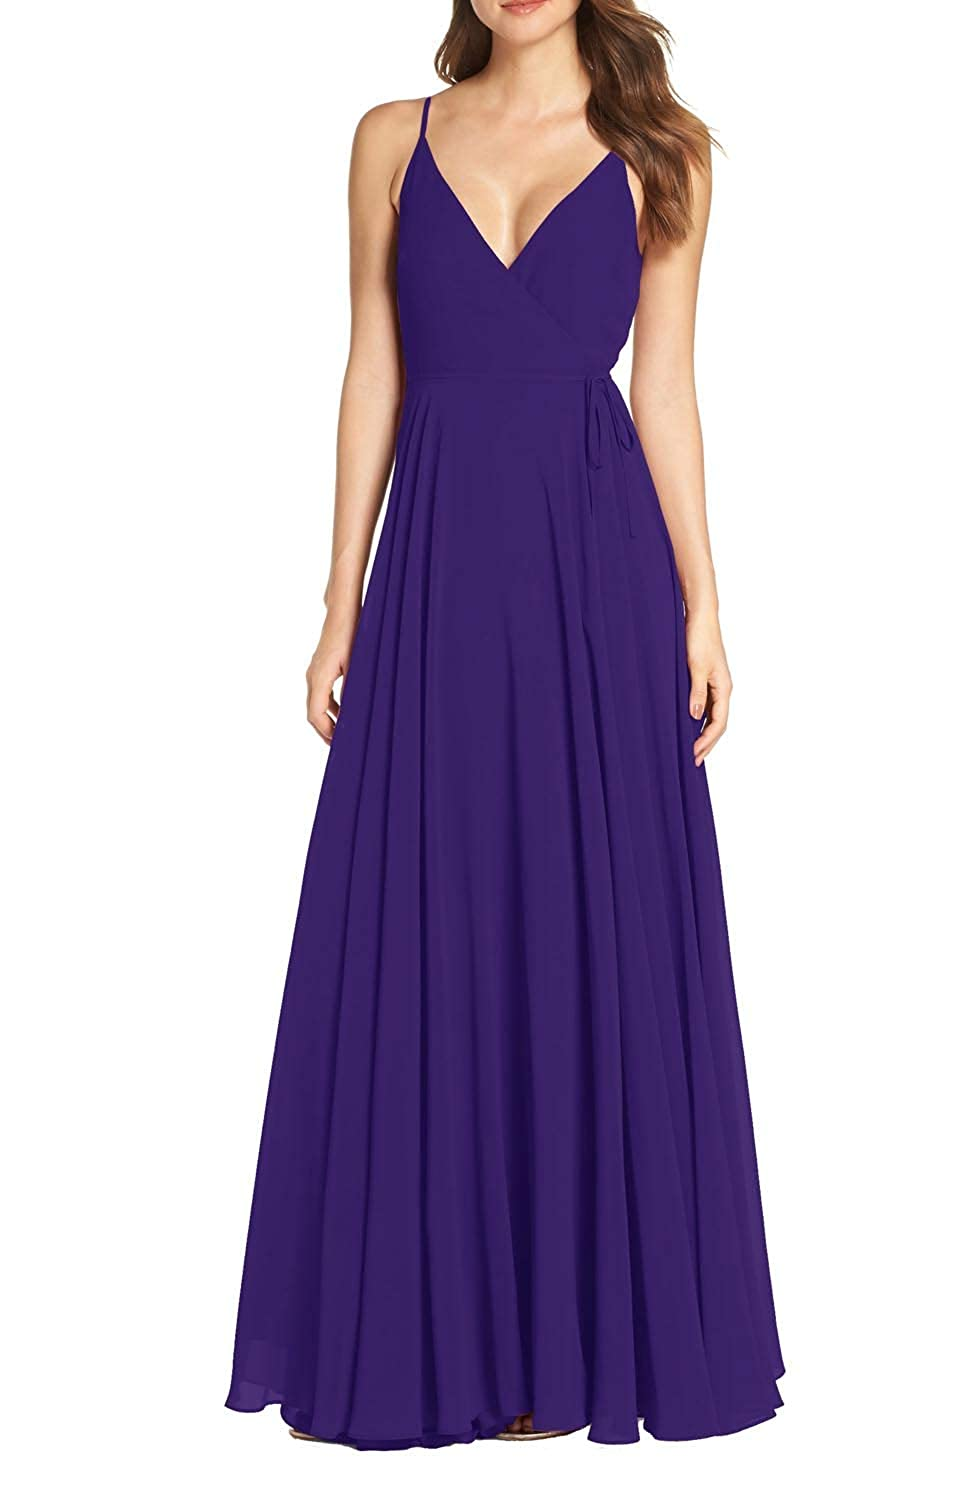 Royal Purple FeiYueXinXing Women's Sleeveless V Neck Evening Dresses Long Bridesmaid Ball Gown Prom Skirt